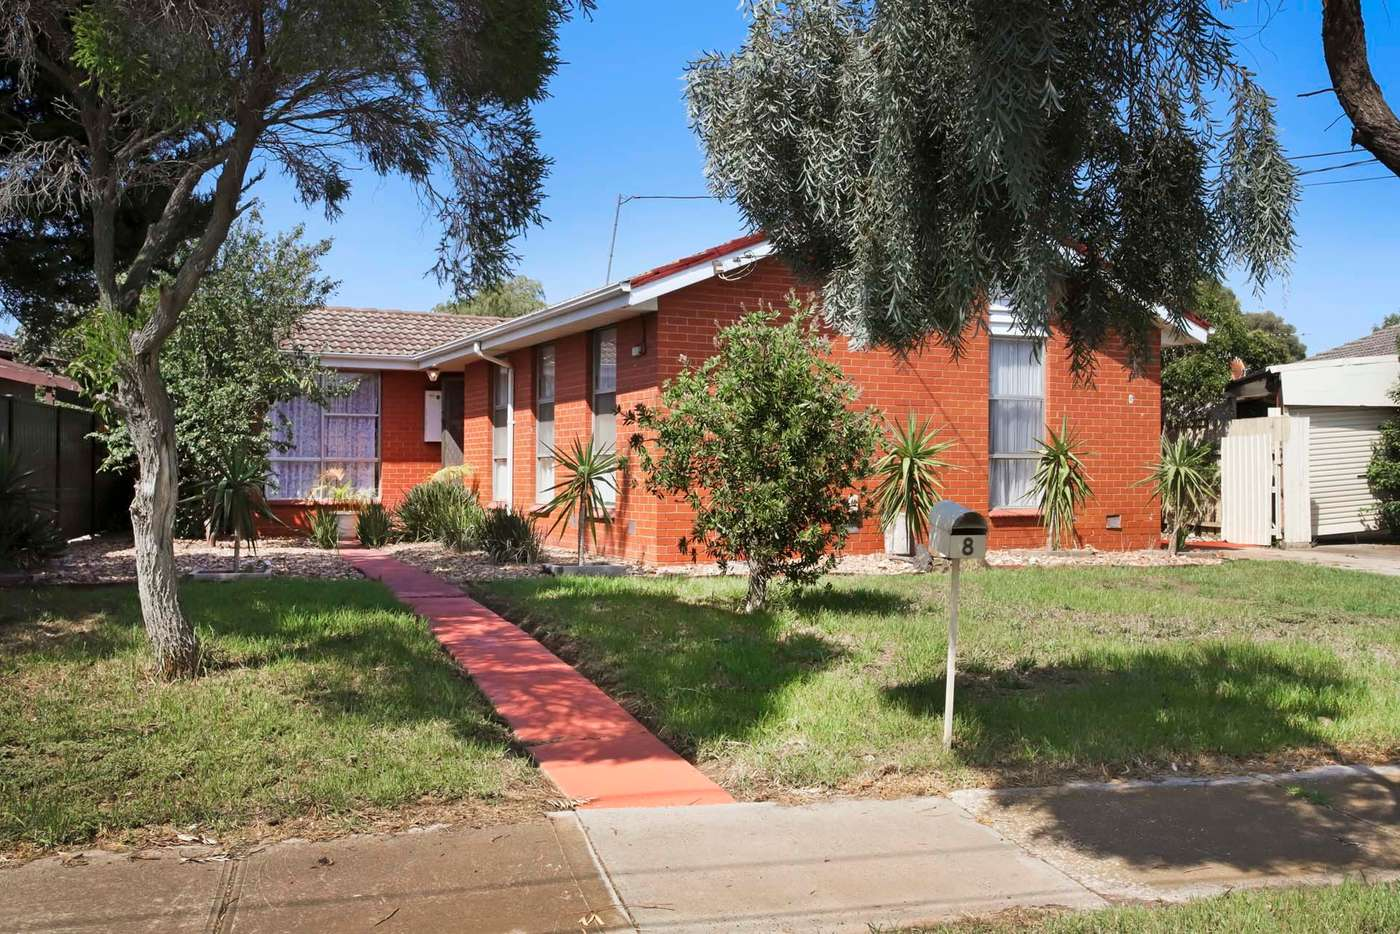 Main view of Homely house listing, 8 Mourell Street, Sunshine West VIC 3020